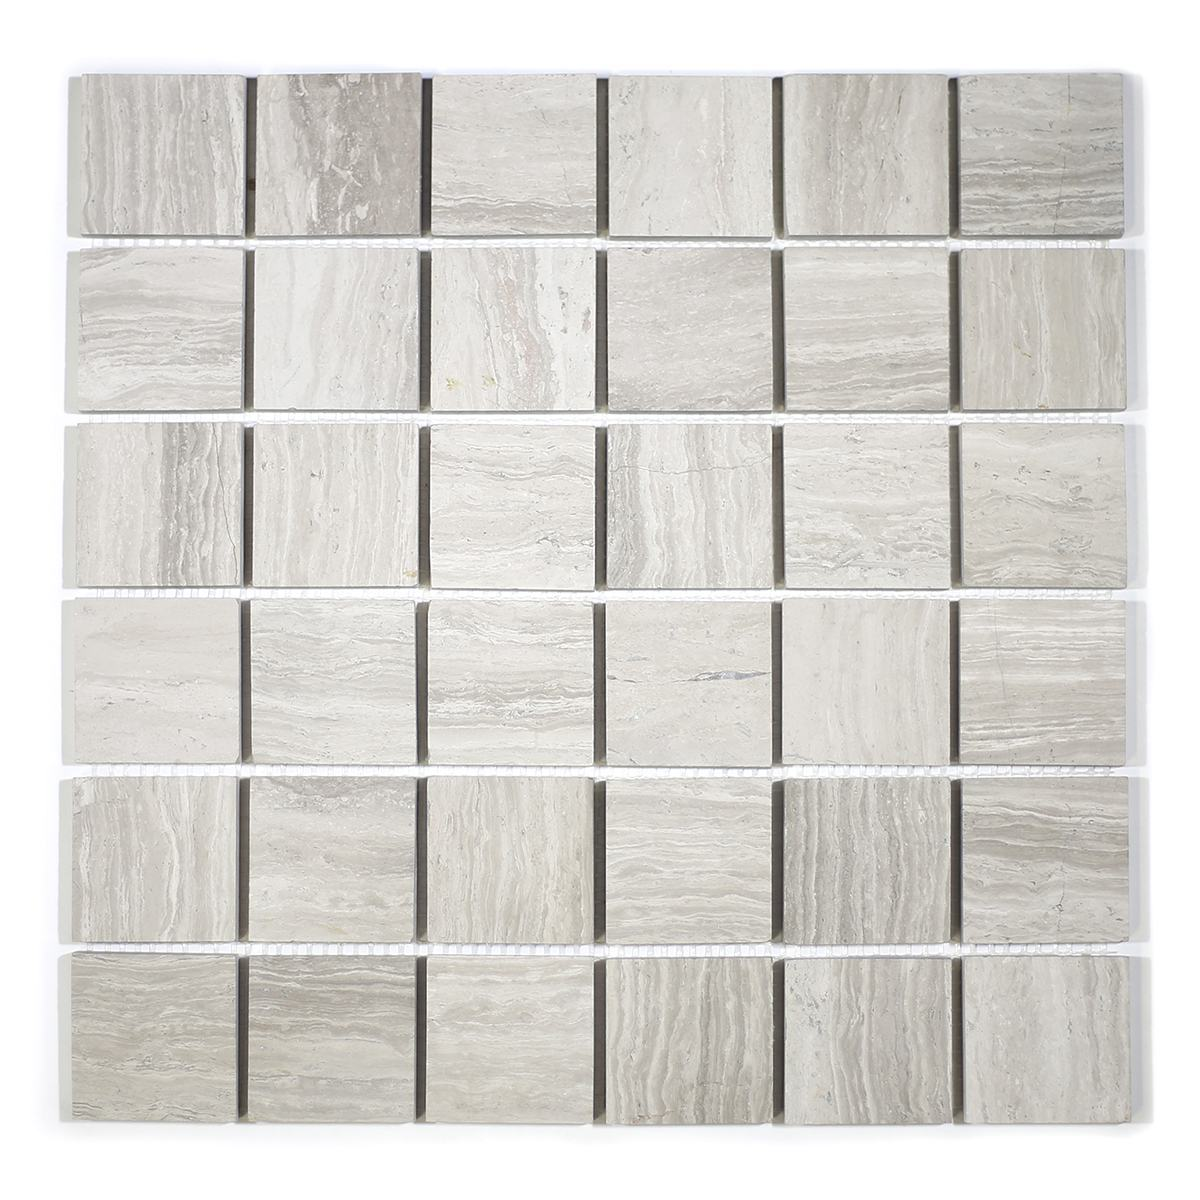 MA265-WHH  2 x 2 White Wooden HONED